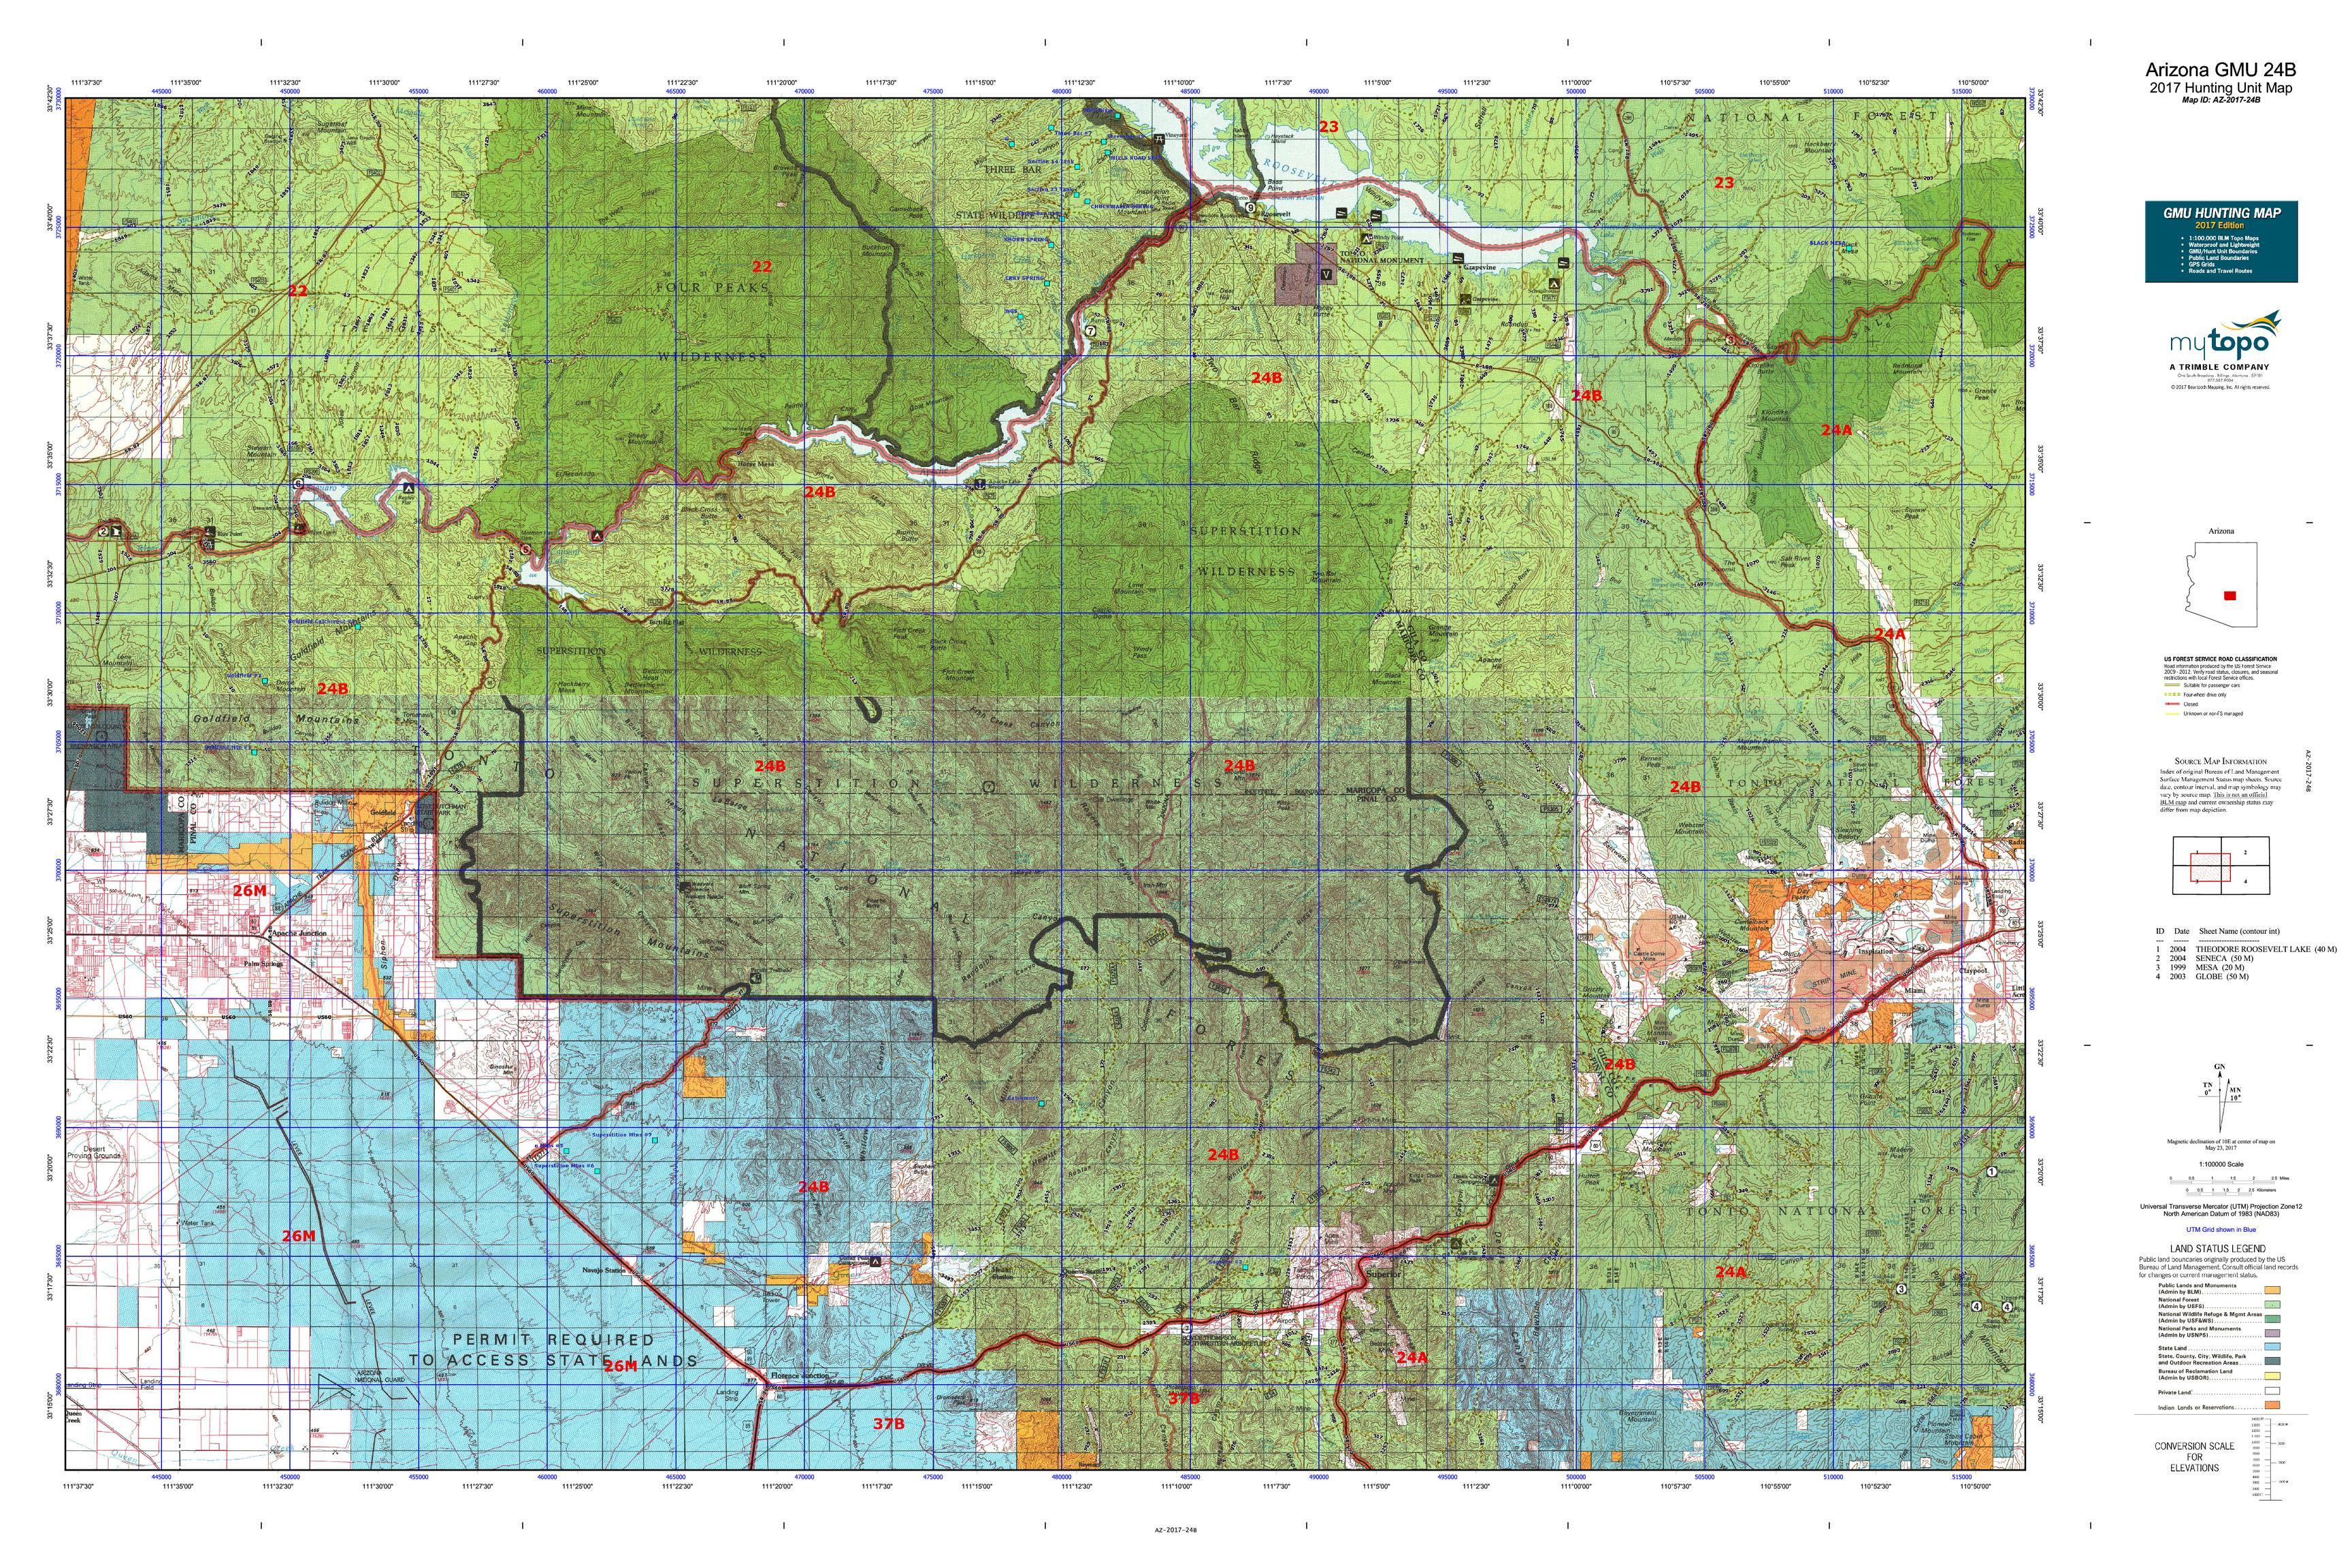 Arizona gmu 24b map mytopo for Arizona game and fish locations